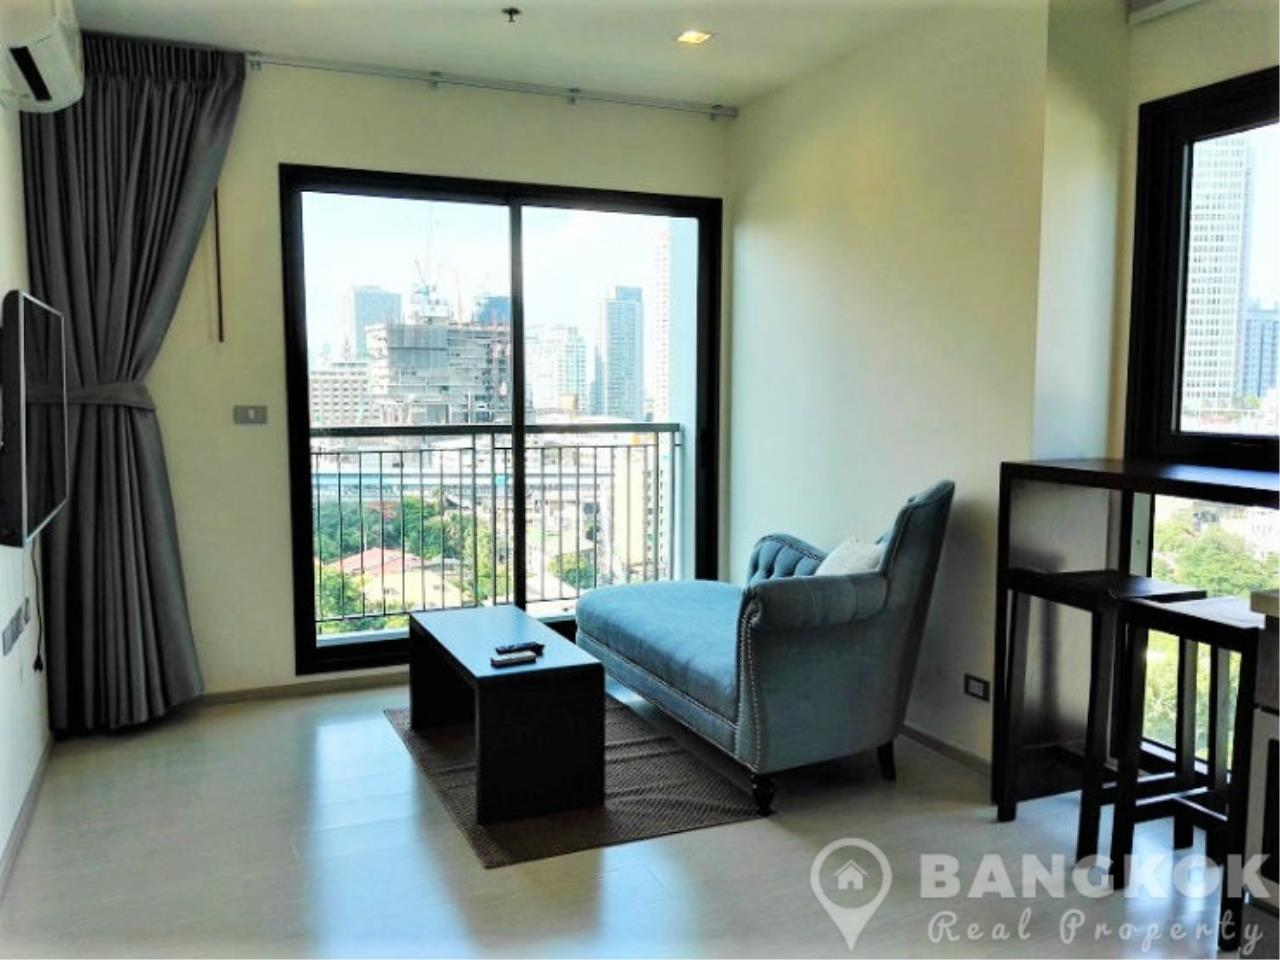 Bangkok Real Property Agency's Rhythm Sukhumvit 36-38 | Brand New Spacious 1 Bed near BTS 1